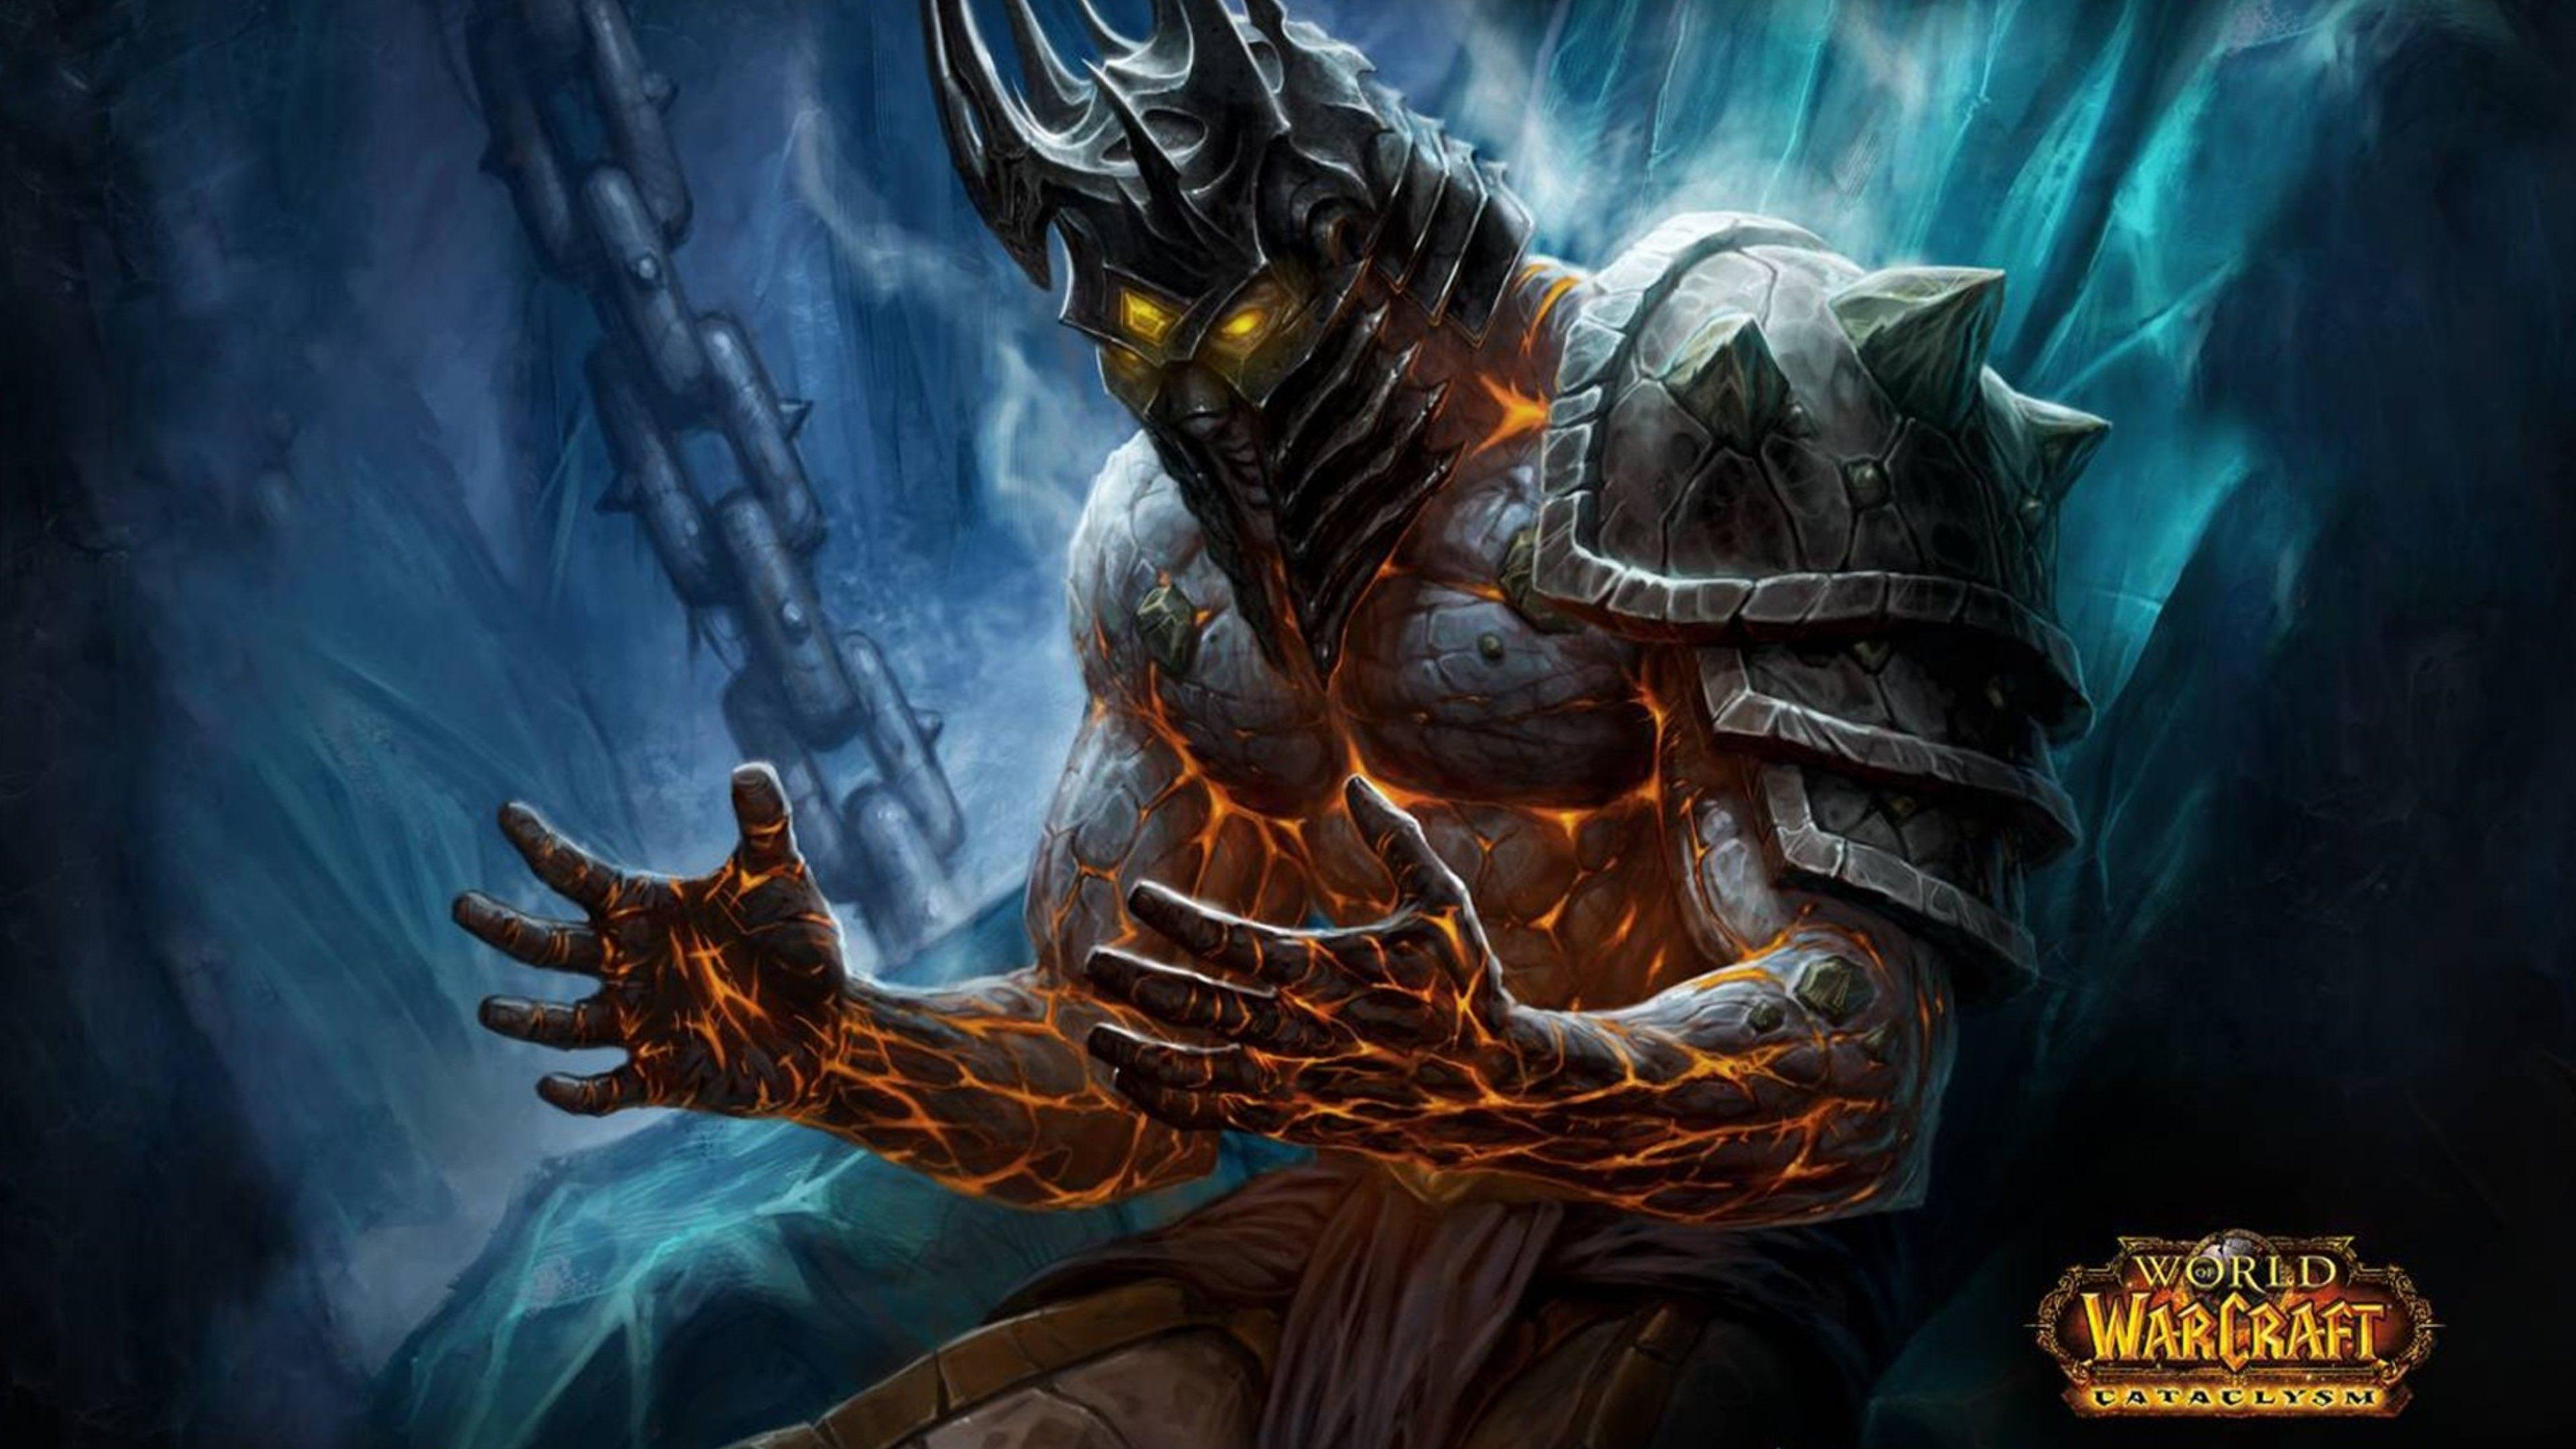 Wrath Of The Lich King Wallpaper World Of Warcraft